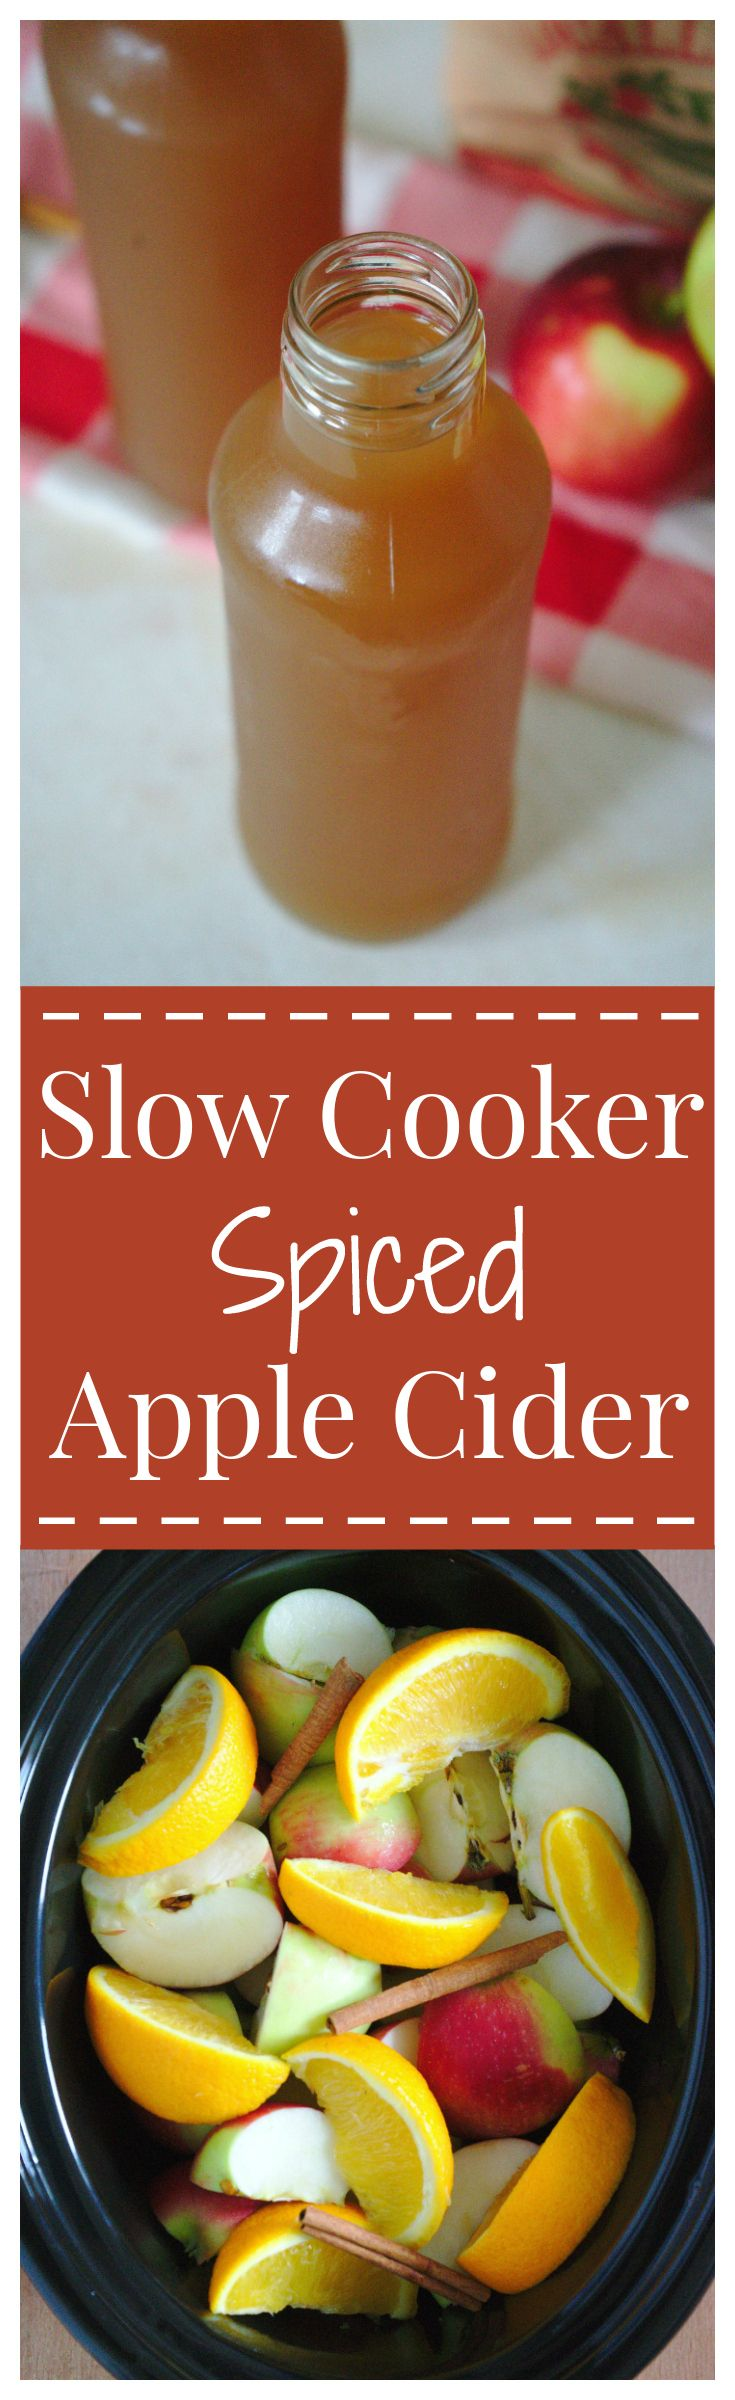 Slow Cooker Spiced Apple Cider – A favorite fall drink made with fresh apples, oranges, and a blend of delicious seasonings slow cooked for hours. #apple